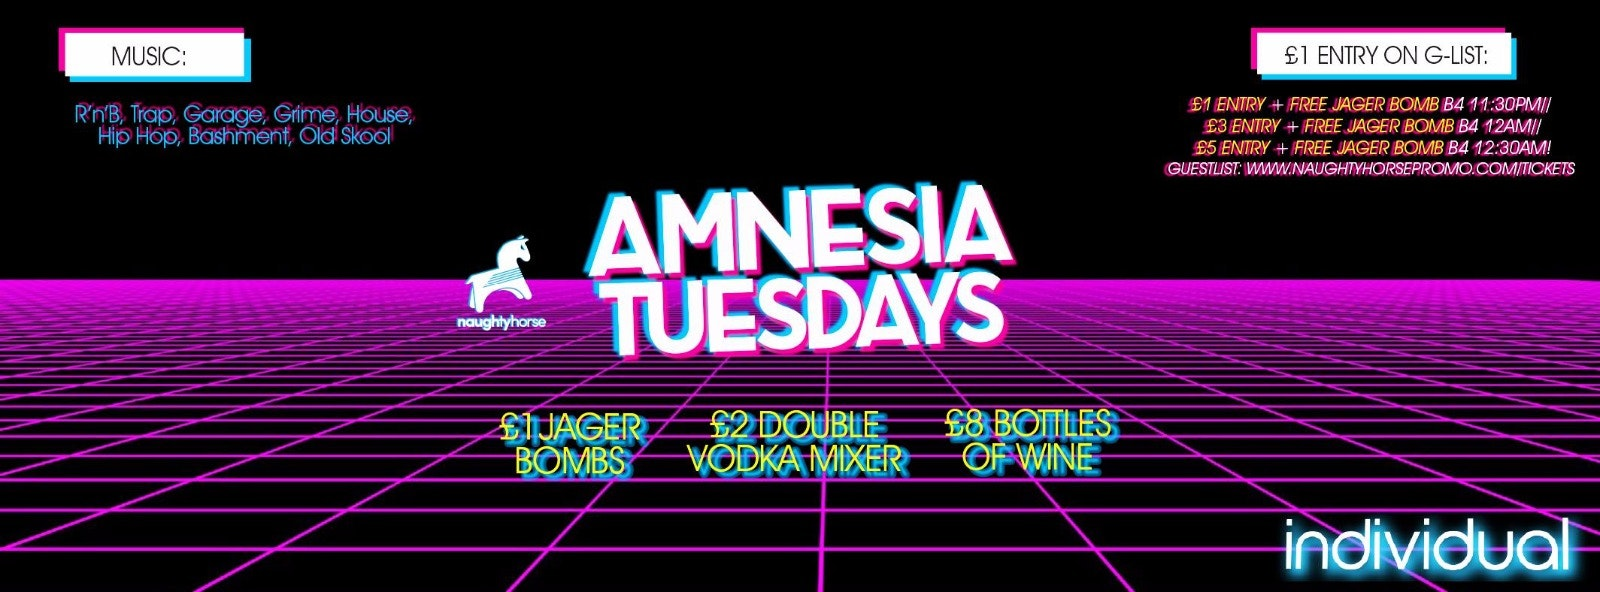 AMNESIA TUESDAYS: FRESHERS PART 2 at Indi (Arcadian) – £1 Entry + FREE JAGERBOMB guestlist!